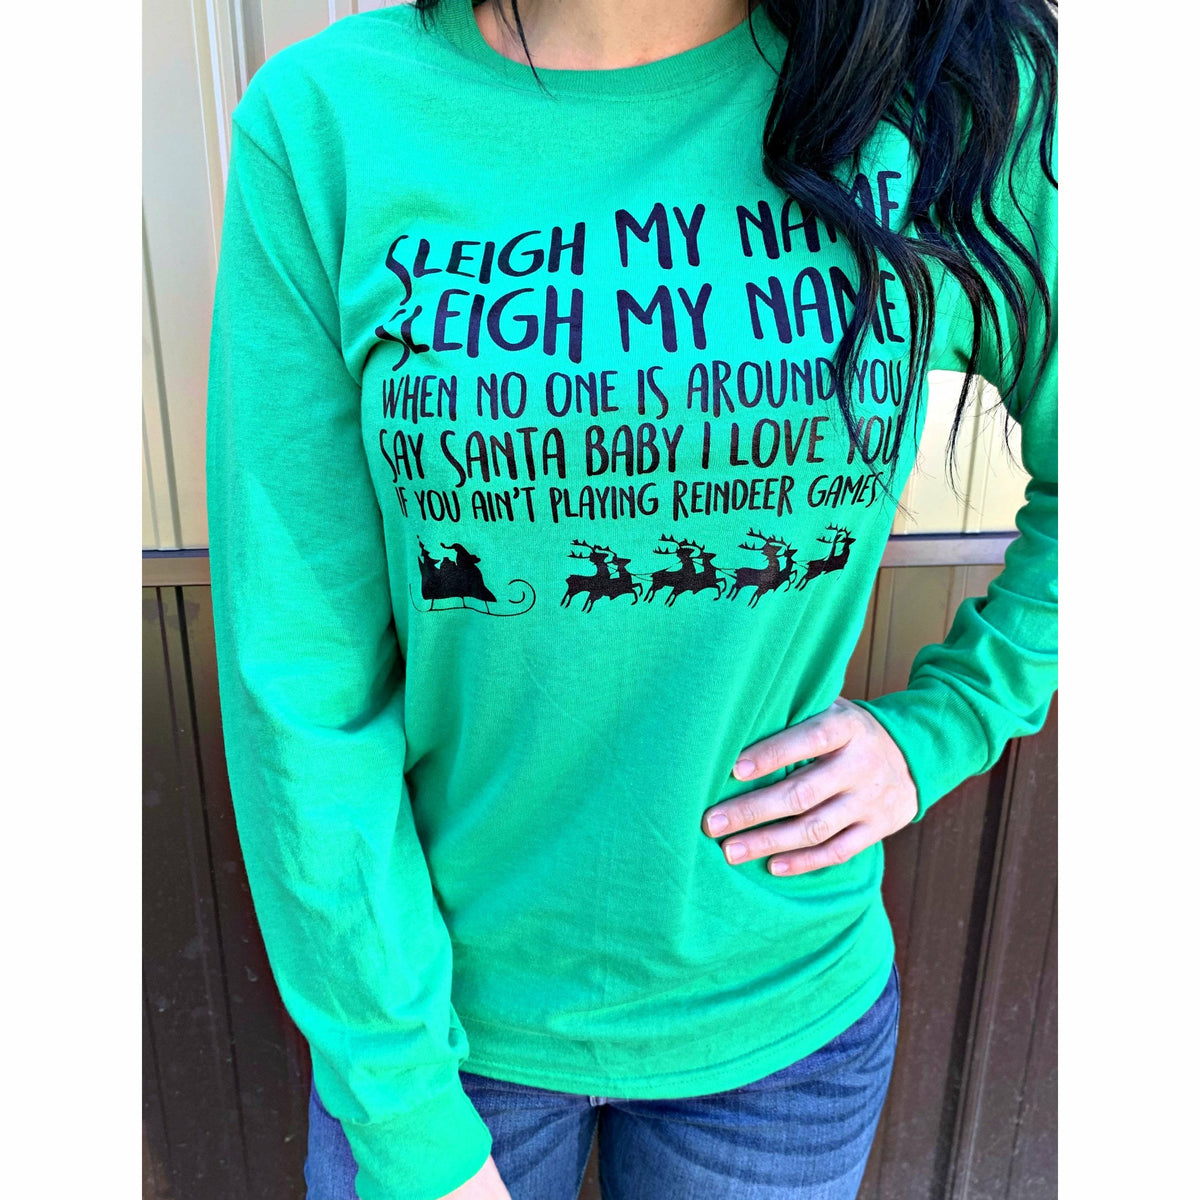 Sleigh my name Long sleeve tee